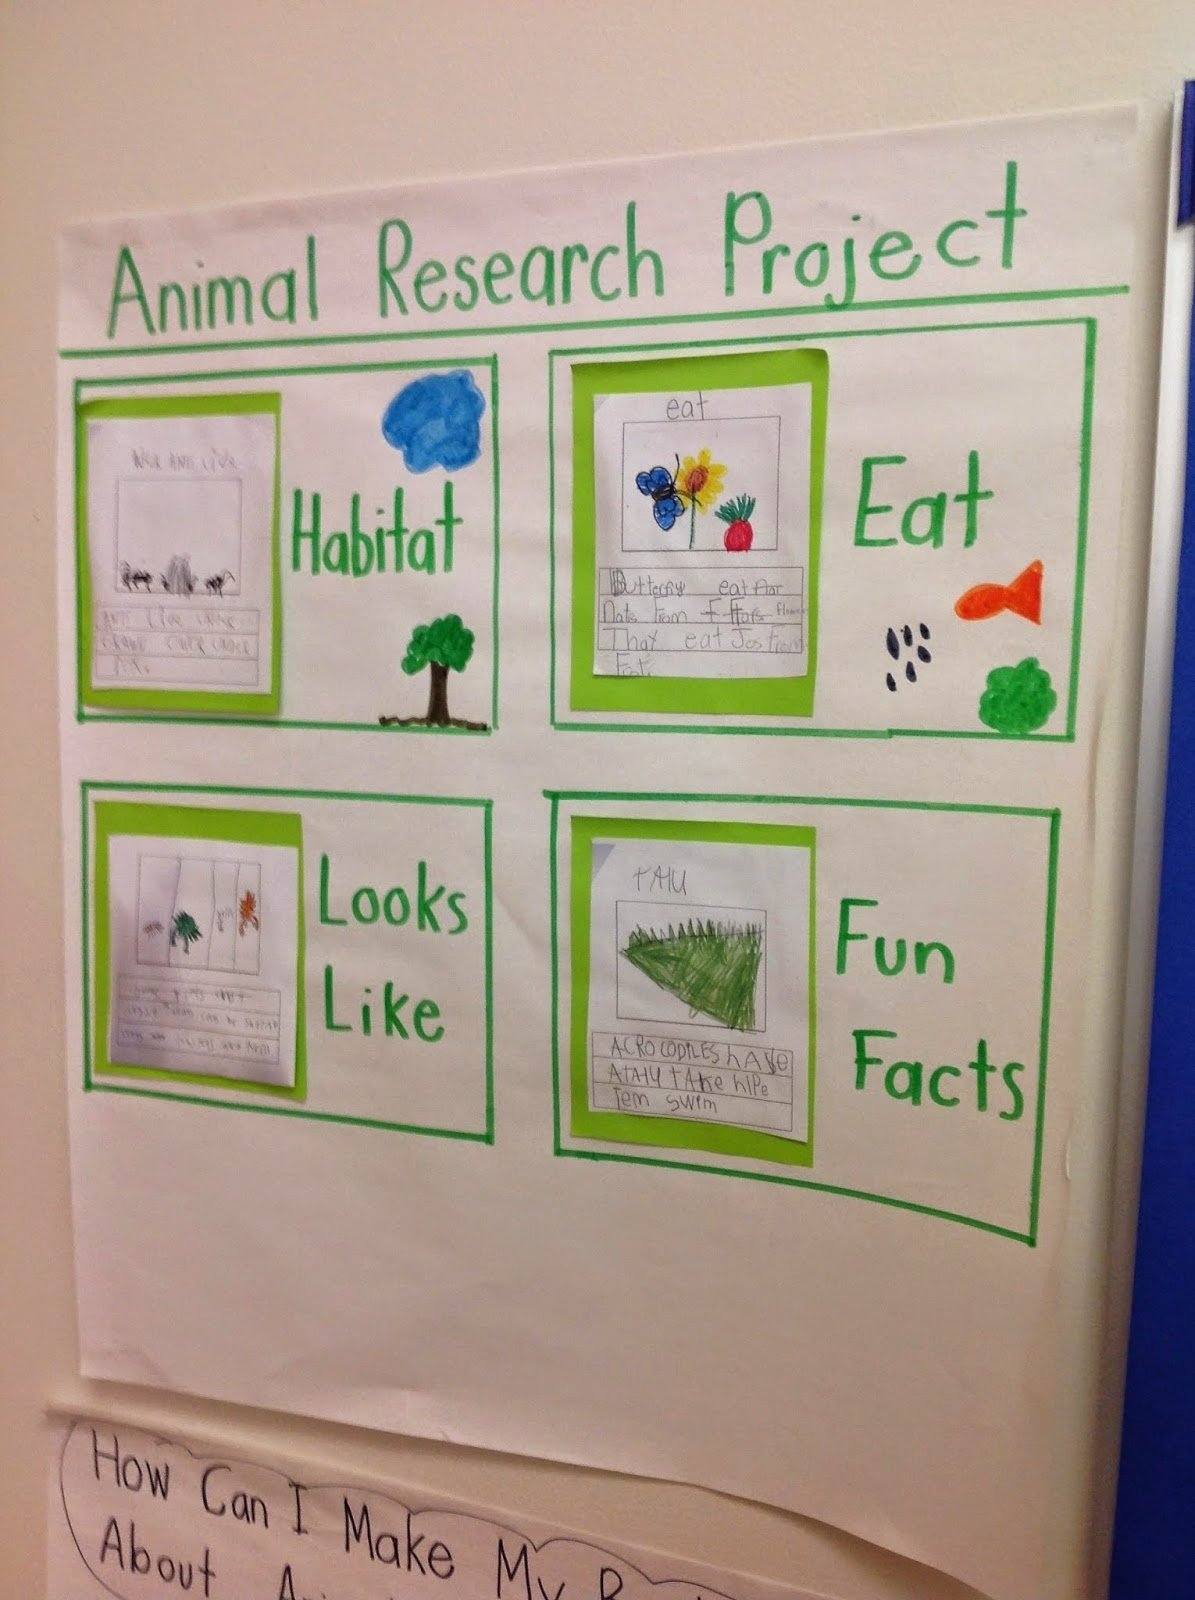 10 Fashionable Senior Project Ideas With Animals what would be a good senior project dealing with animals 1 2020